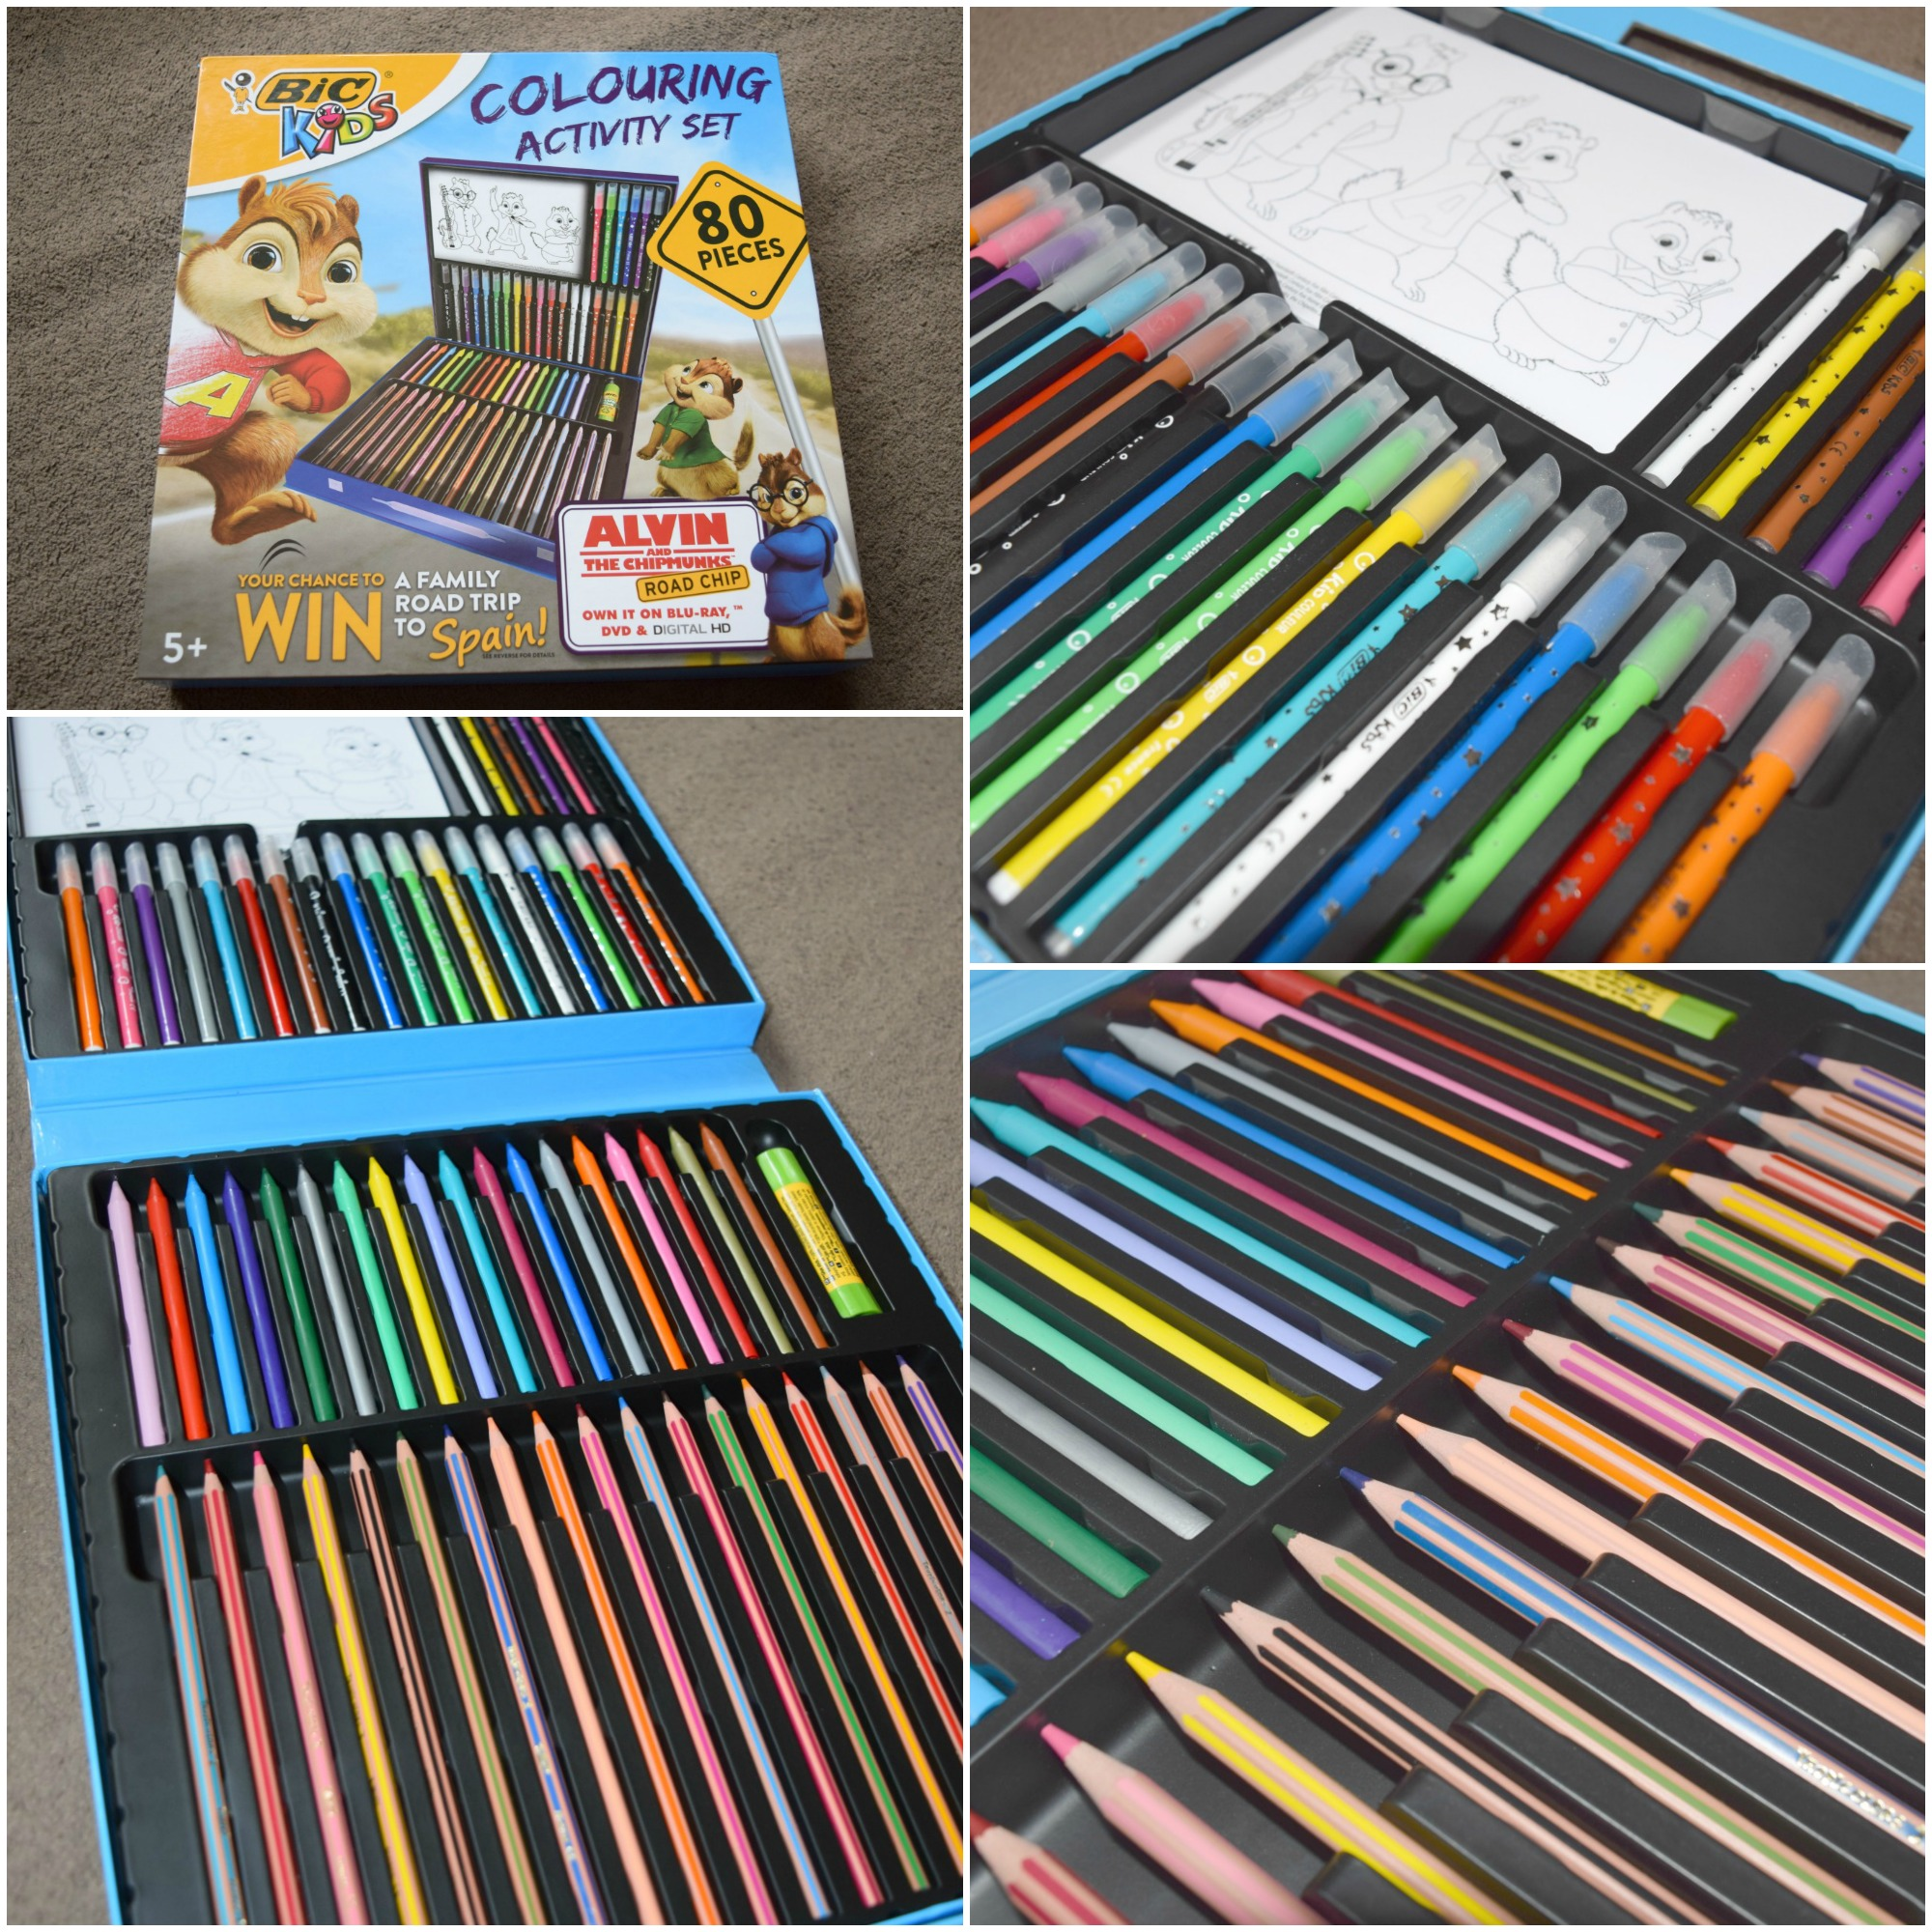 bic colouring set Collage